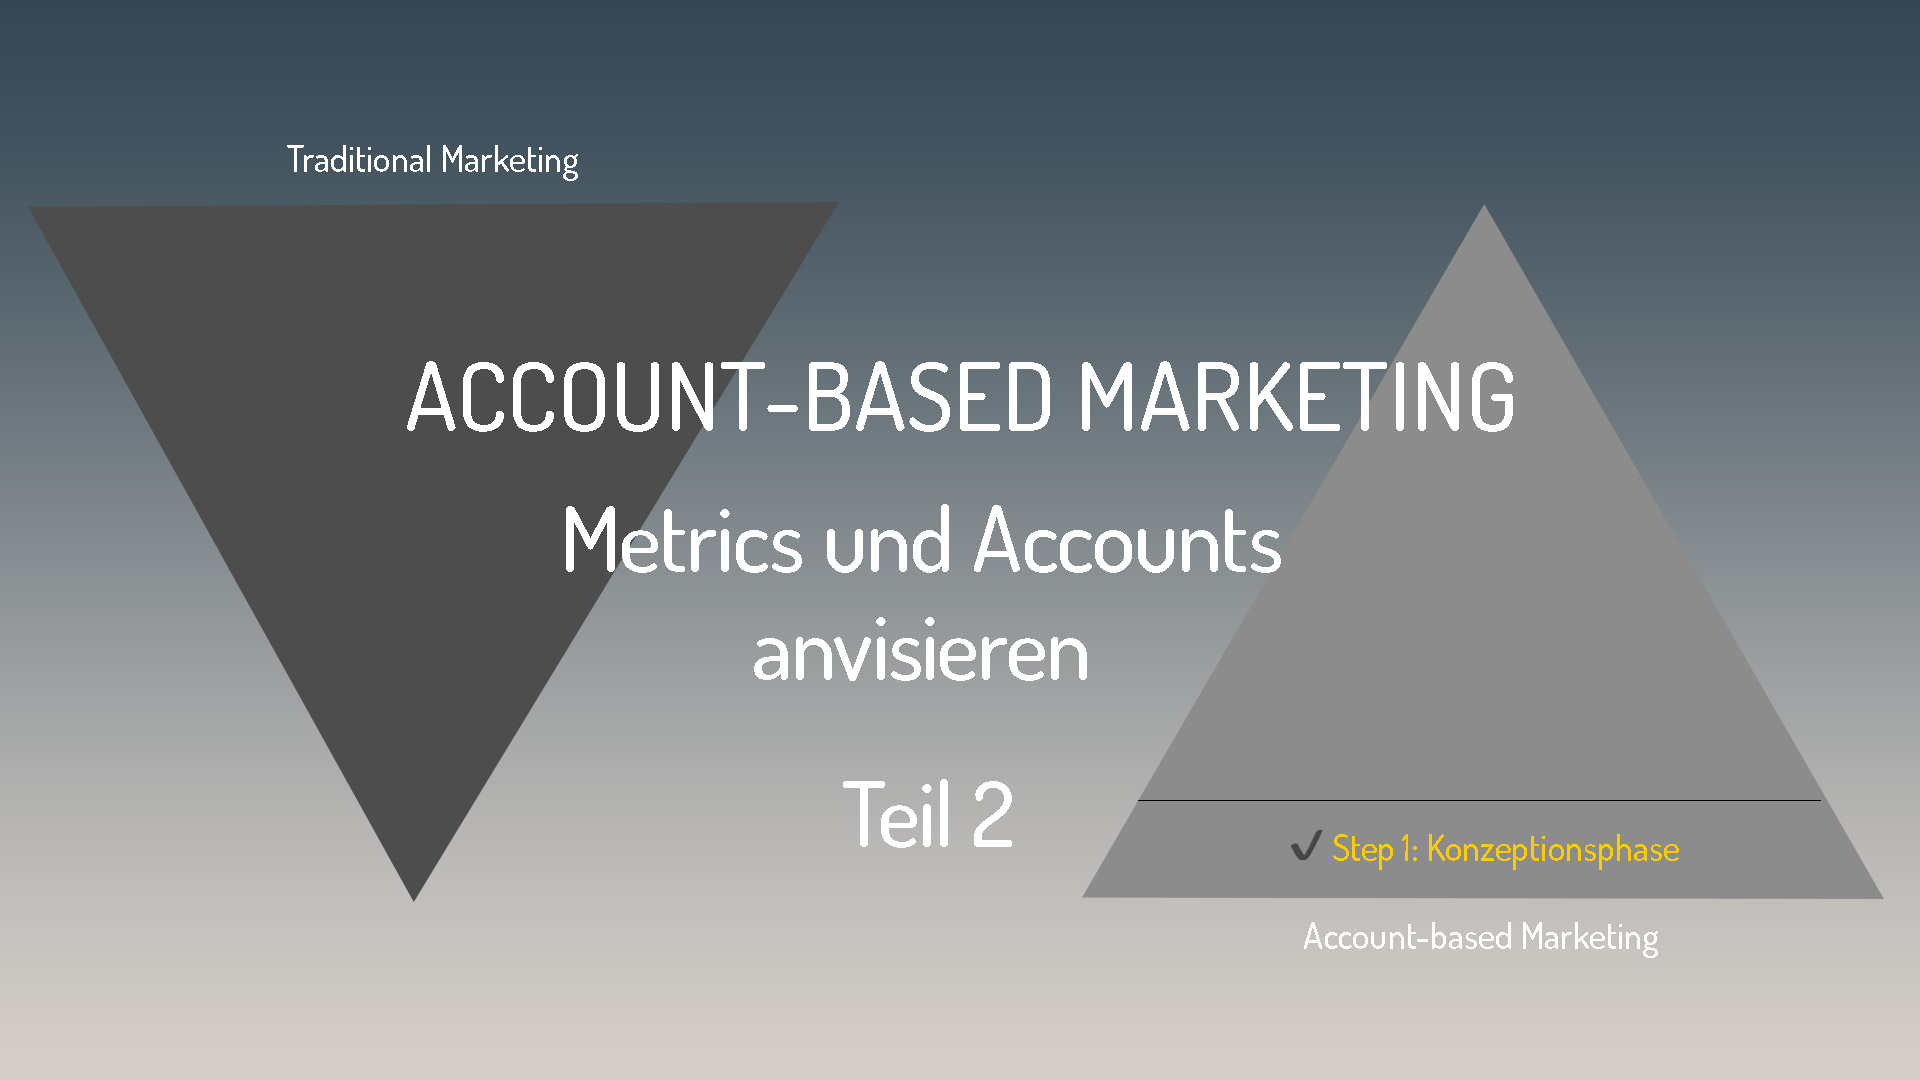 Metrics und Accounts anvisieren